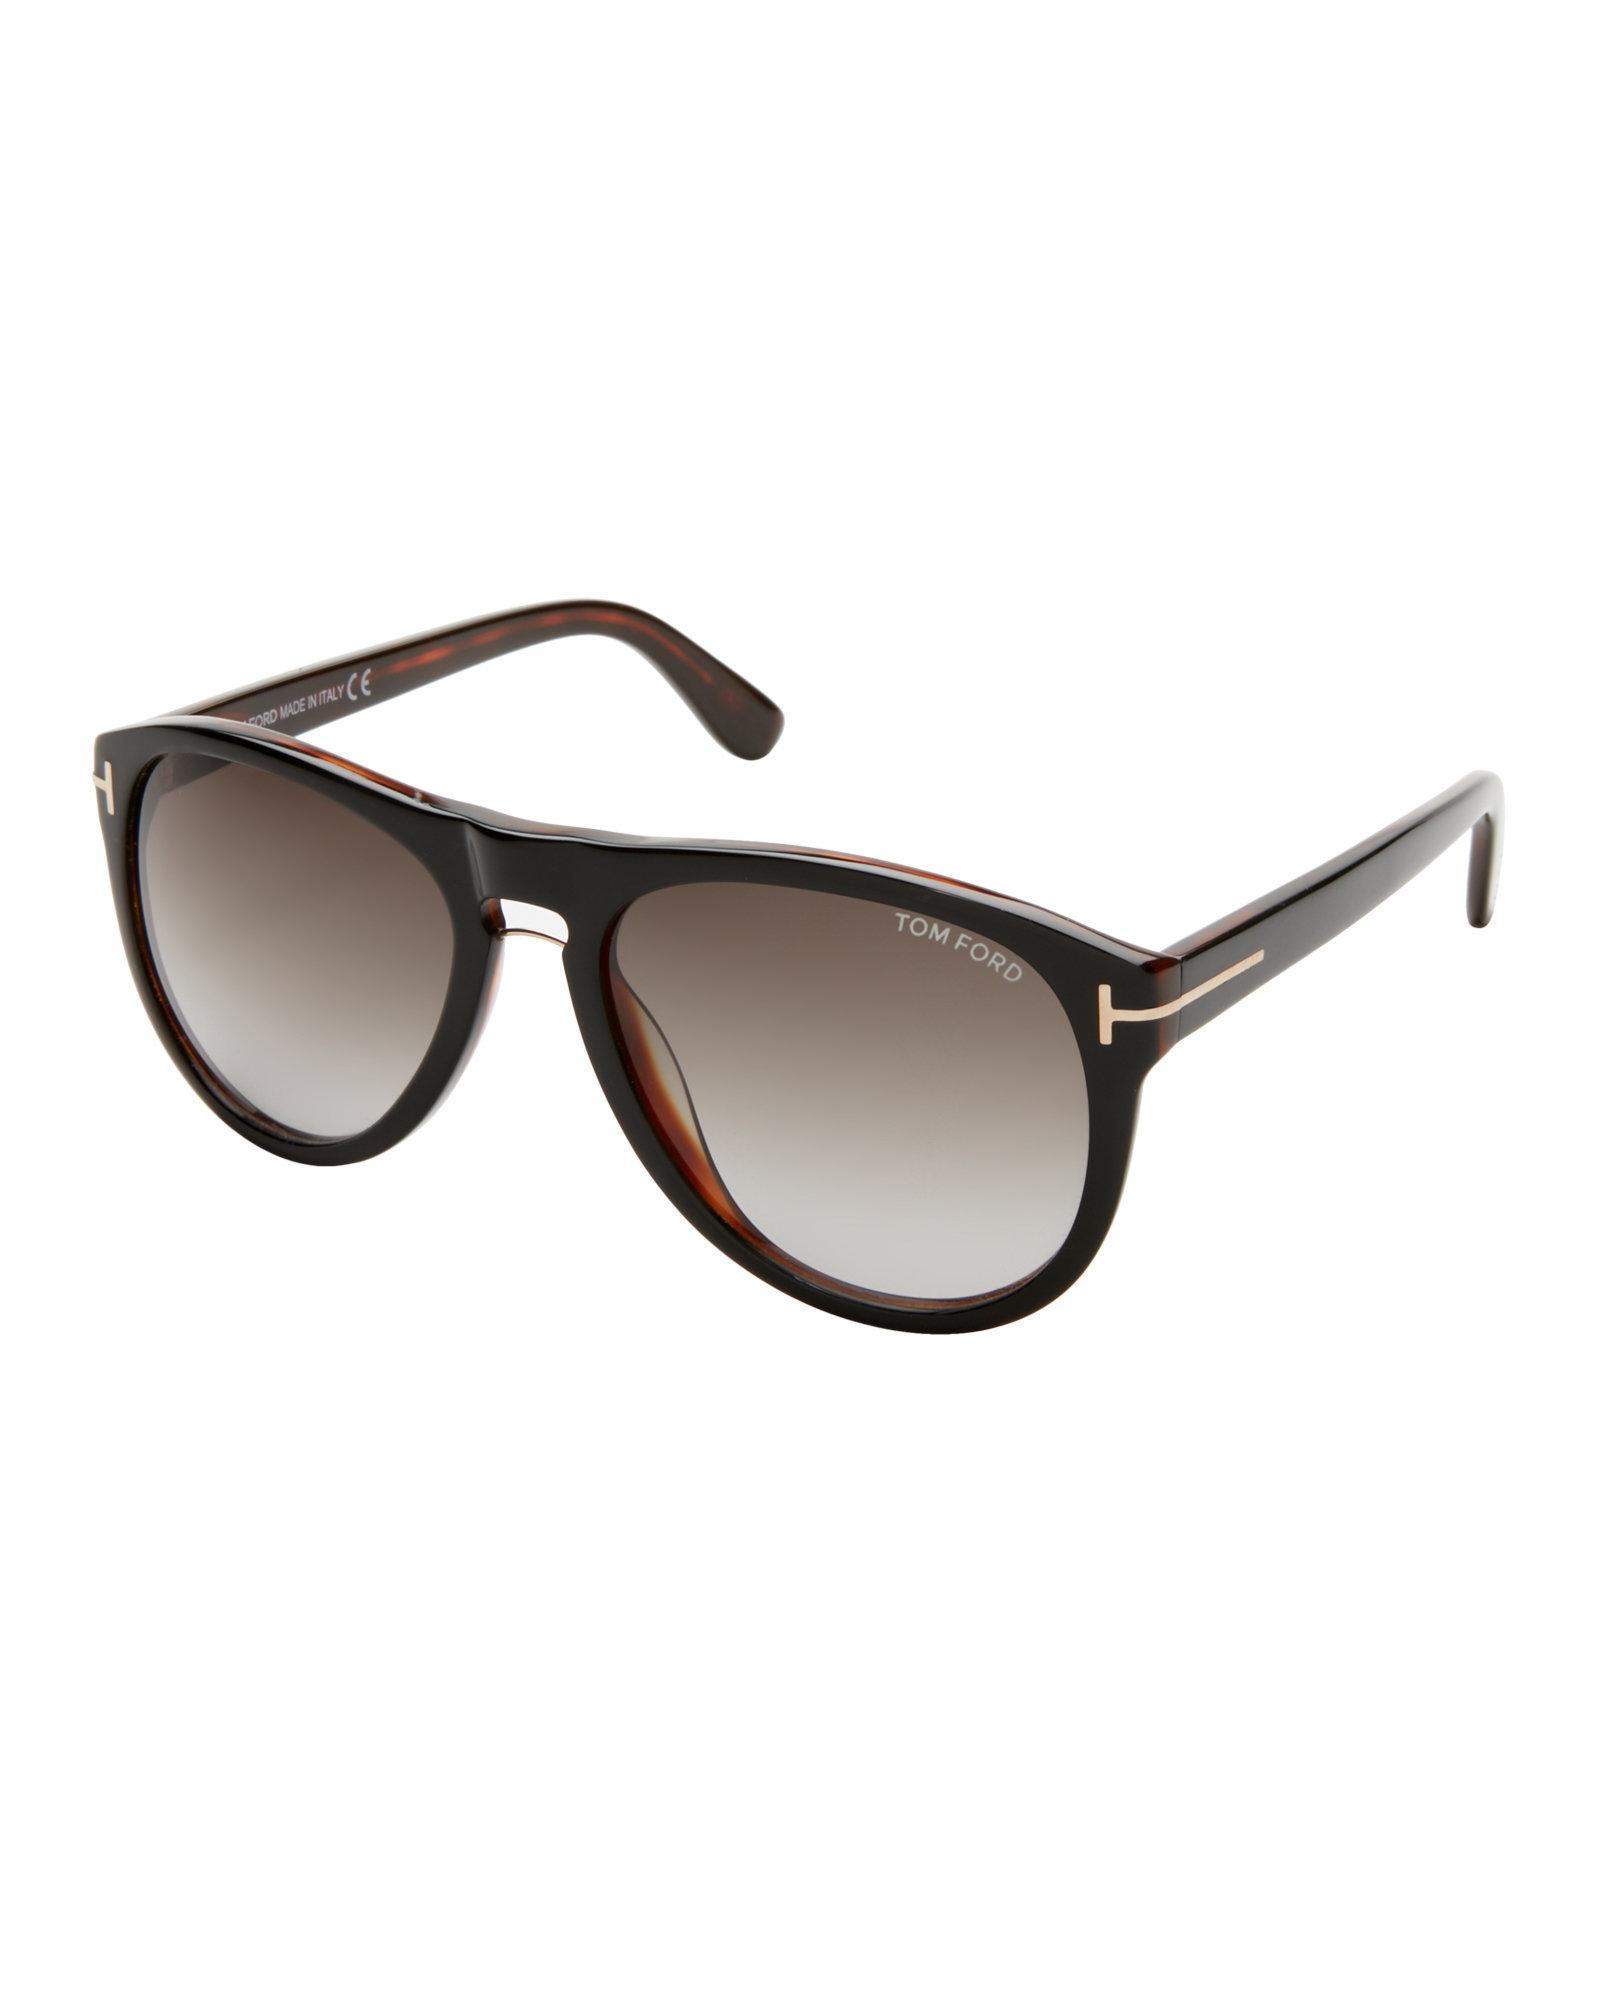 19eab4495b Gallery. Previously sold at  Century 21 · Men s Tinted Sunglasses ...